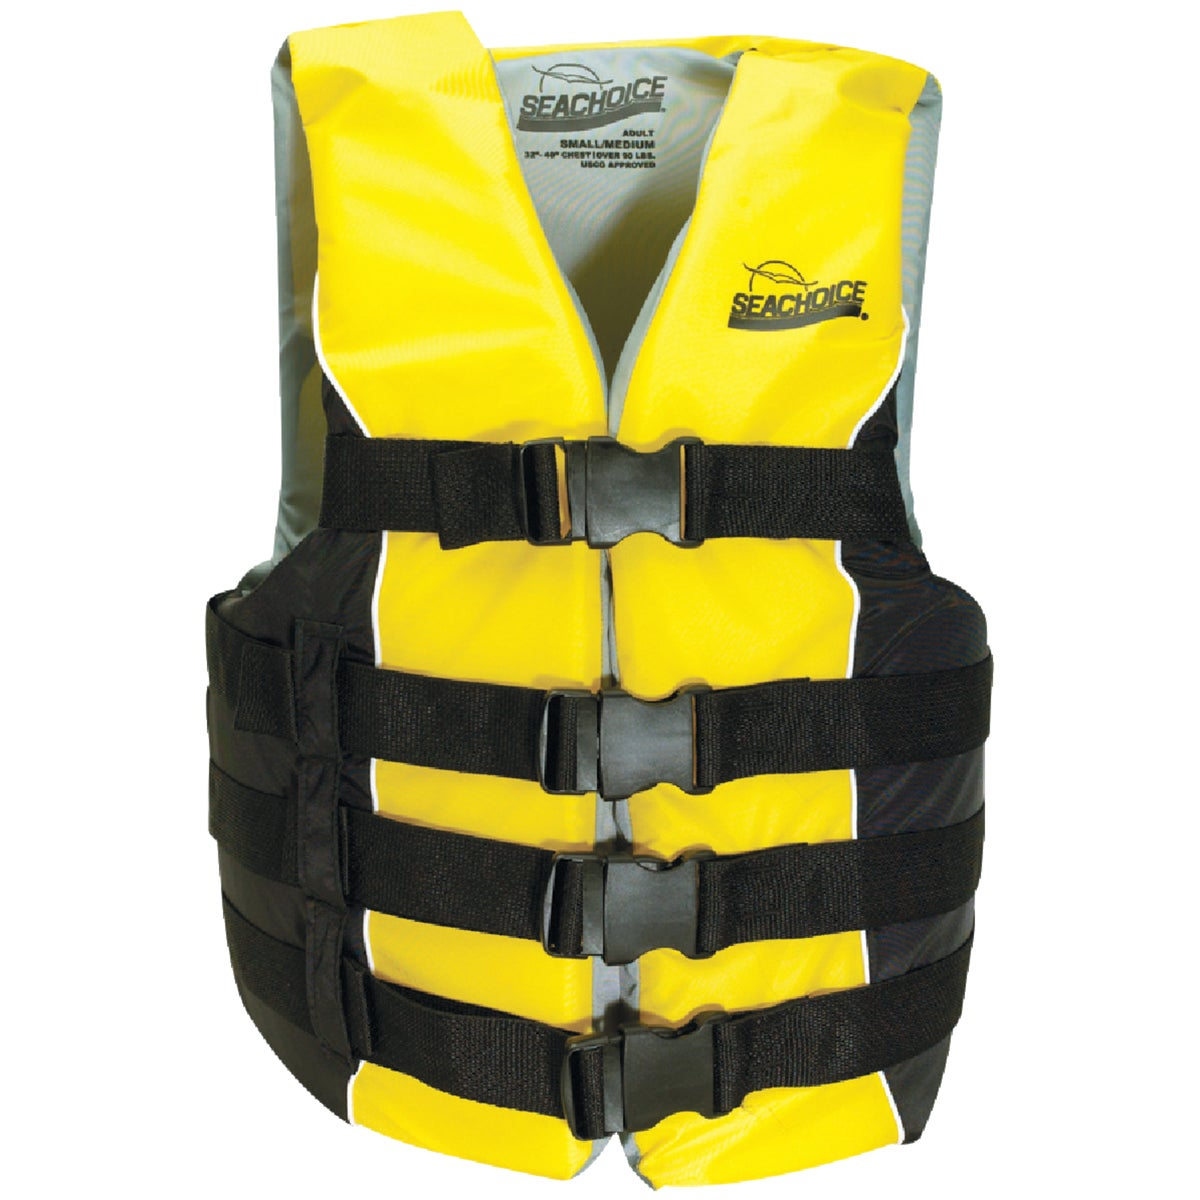 LG/XL 4 BELT SKI VEST - 86420 by Seachoice Prod